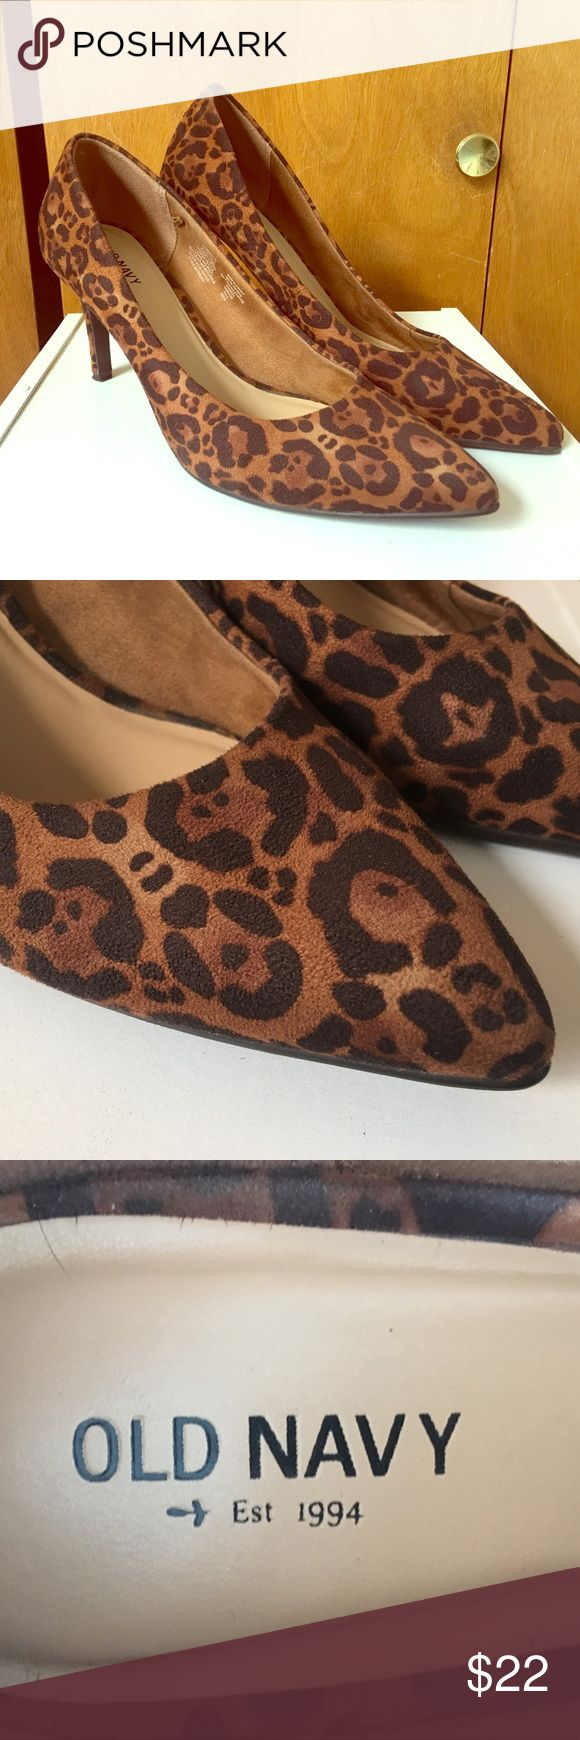 Animal Print High Heels Animal print high heels in a size 10. Work only once, size was too big. Old Navy Shoes Heels